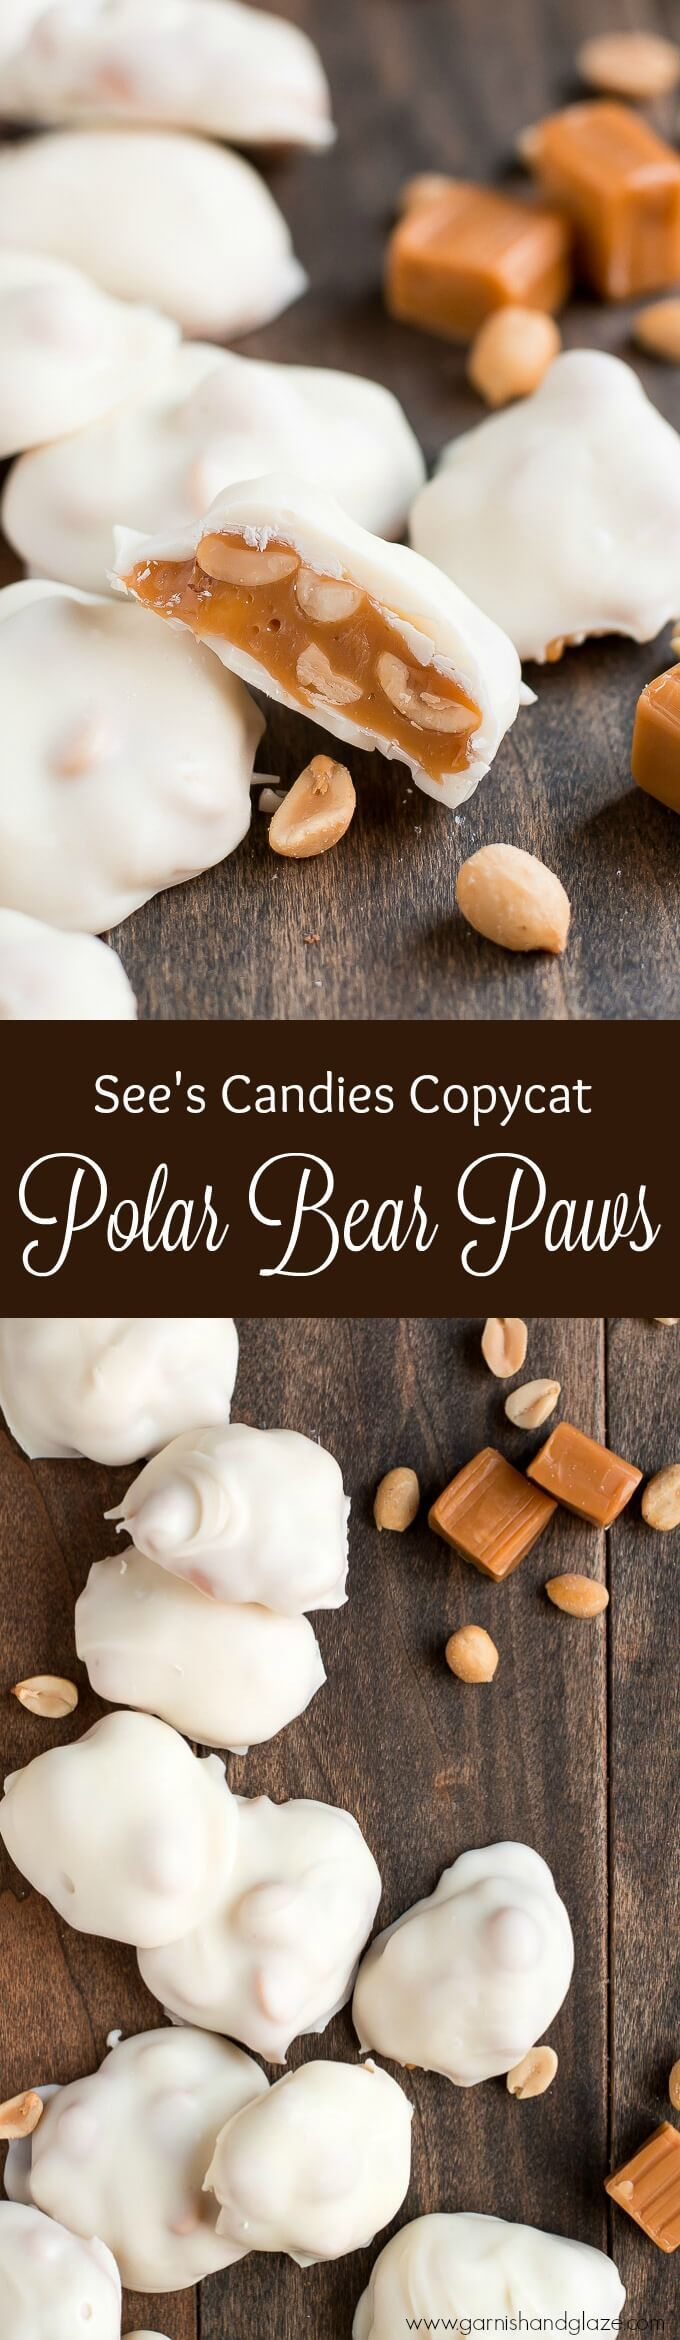 Polar Bear Paws {See's Candies Copycat} are filled with salty roasted peanuts and soft buttery caramel, all coated in sweet white chocolate. Perfect for the holidays!